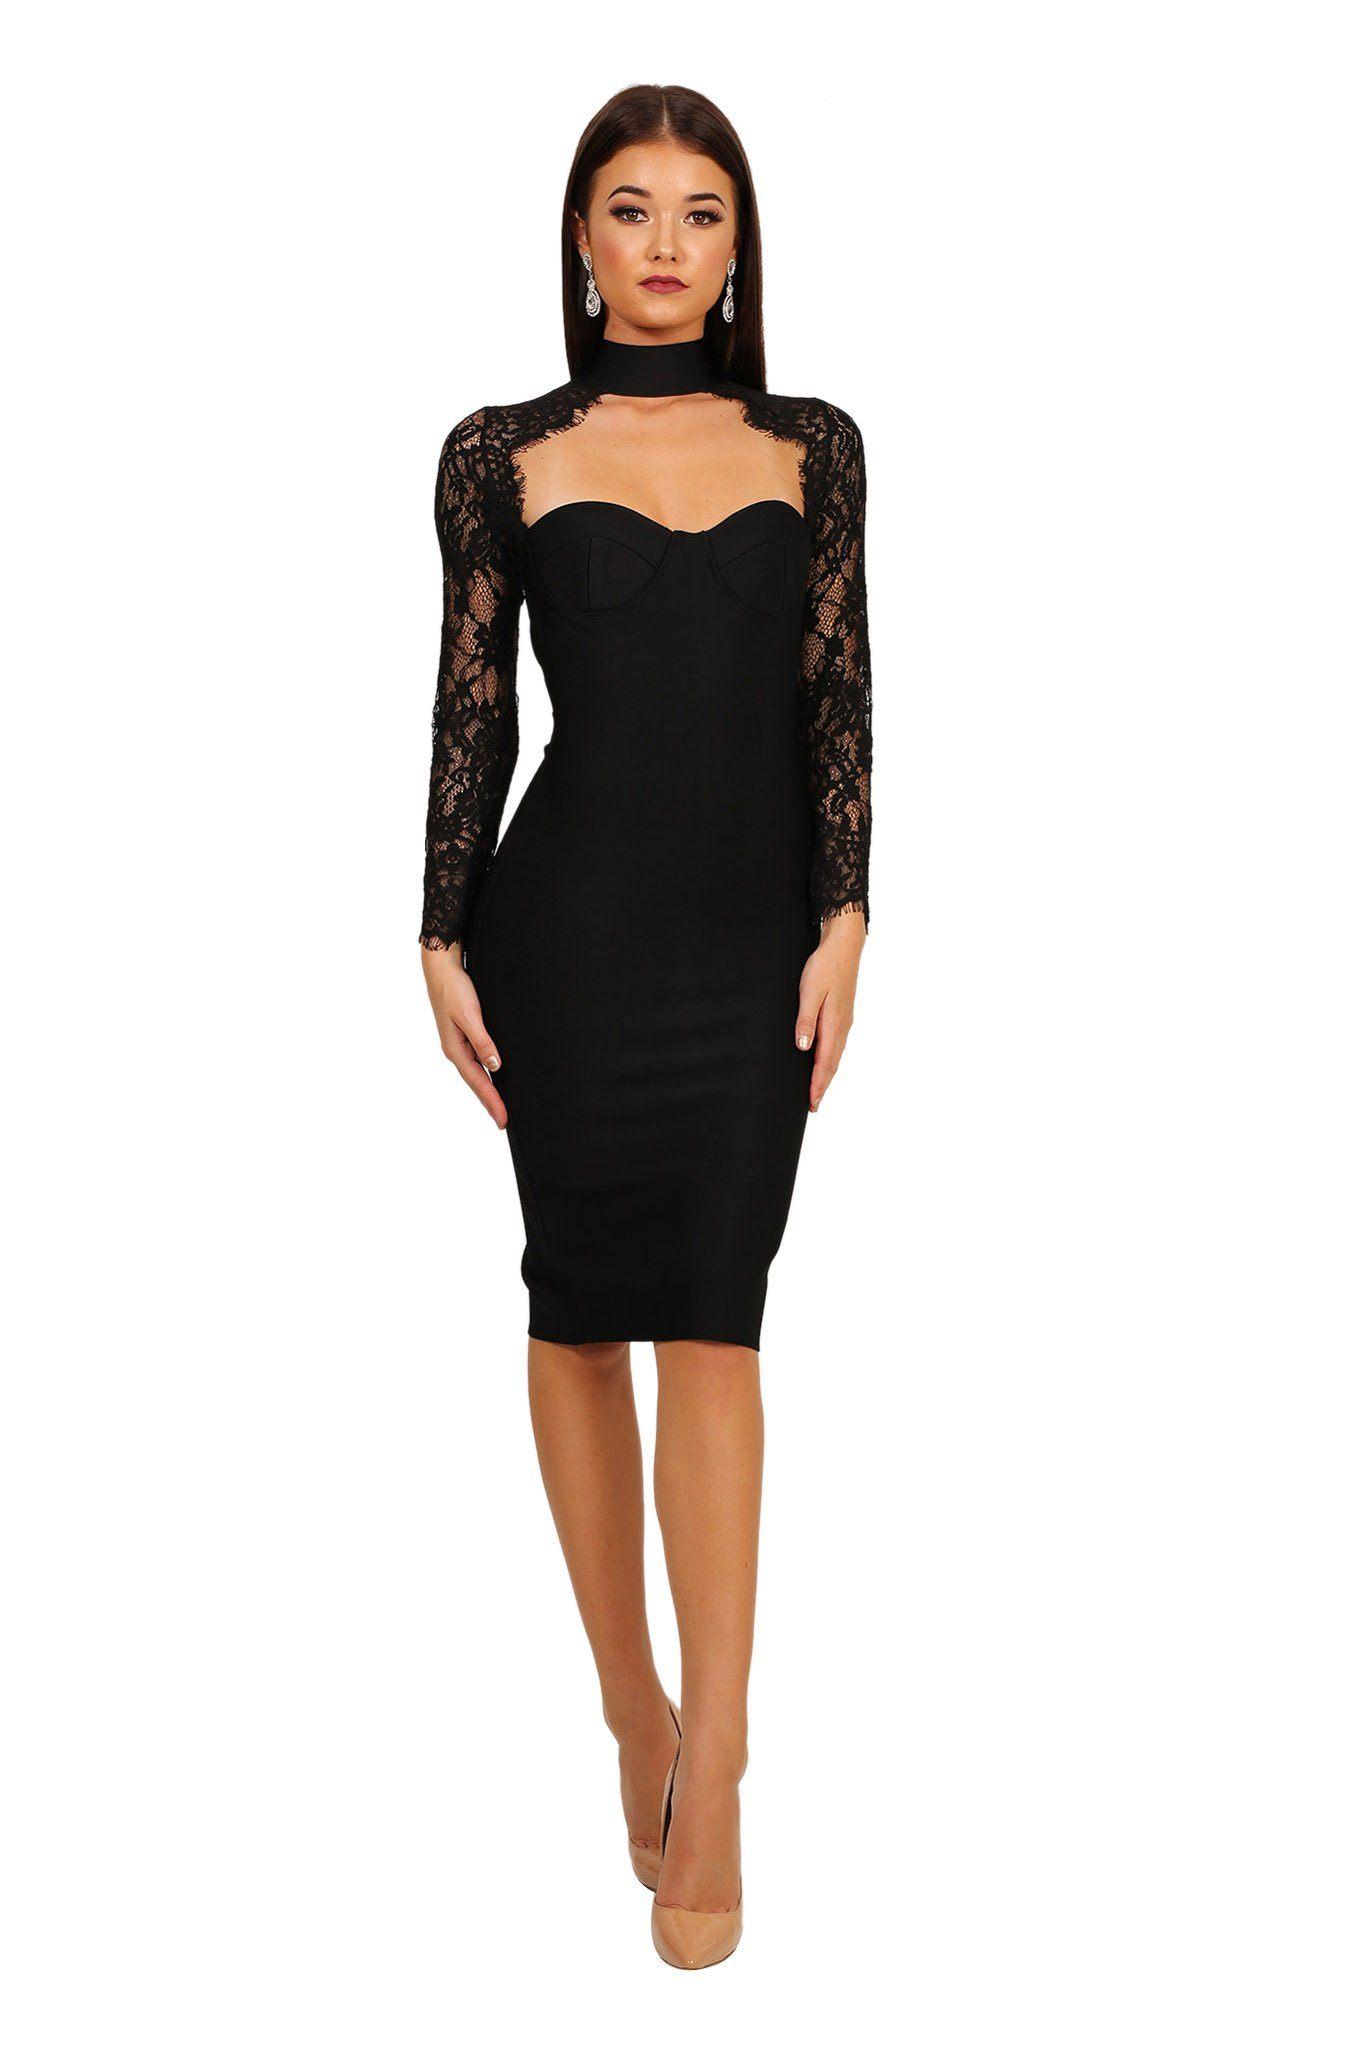 e59b6b50a92c Front image of lace long-sleeve midi-length bandage dress with sweetheart  choker neckline